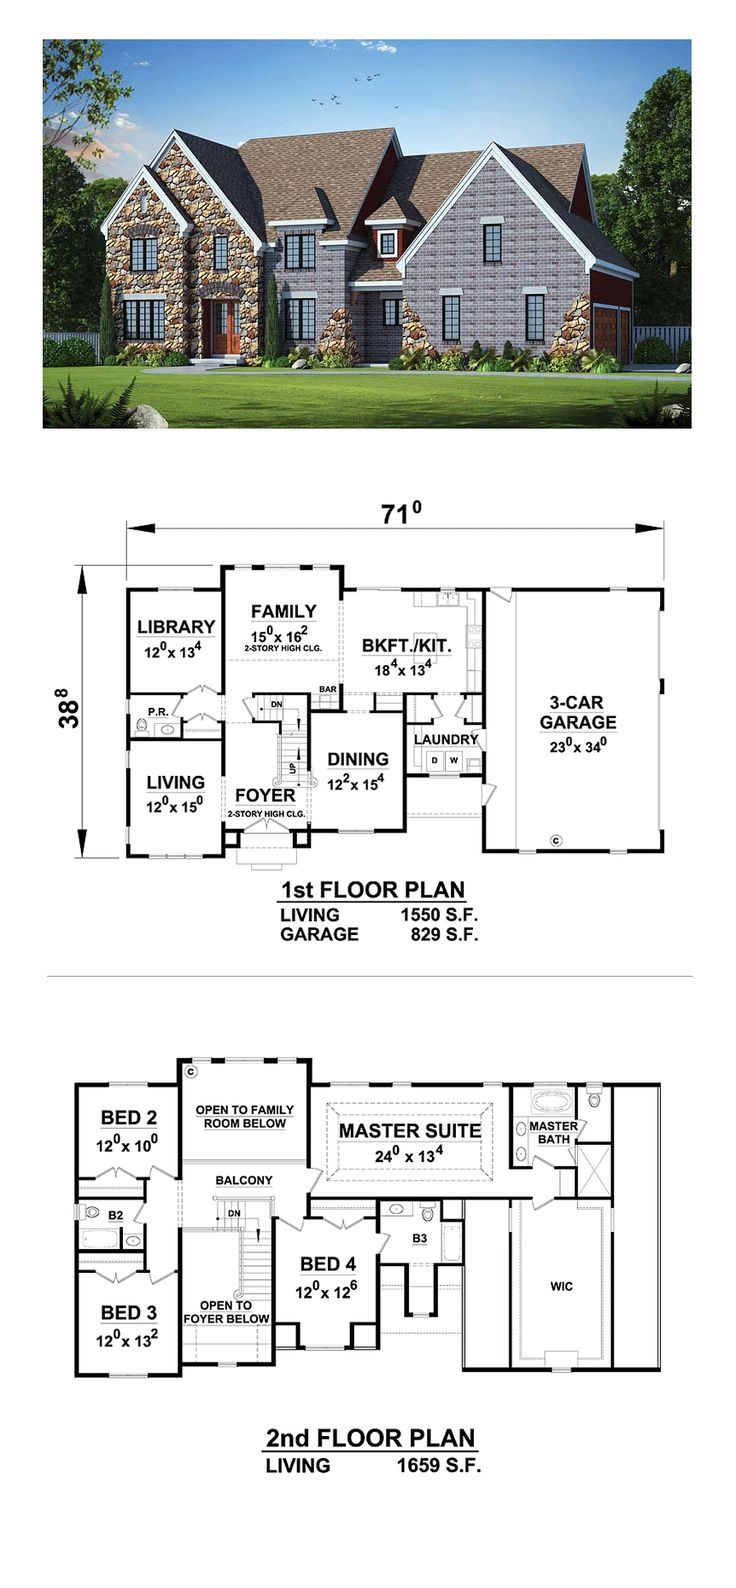 best 20 new house plans ideas on pinterest architectural floor new house plan 66727 total living area 3209 sq ft 4 bedrooms